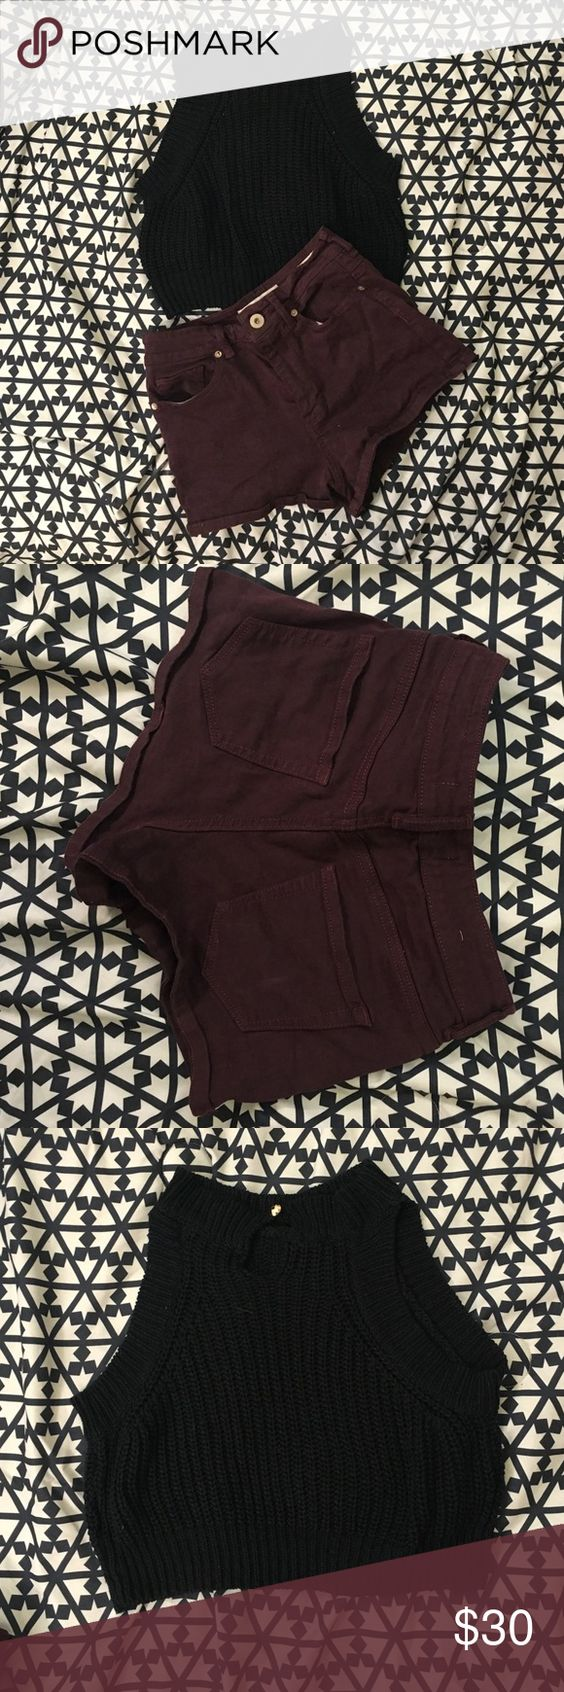 Maroon shorts and black top outfit Maroon shorts are from pac sun and the black knit crop top is from forever 21, the two go really well together, both very comfy and stretchy. Shorts size 3 and top size medium PacSun Shorts Jean Shorts